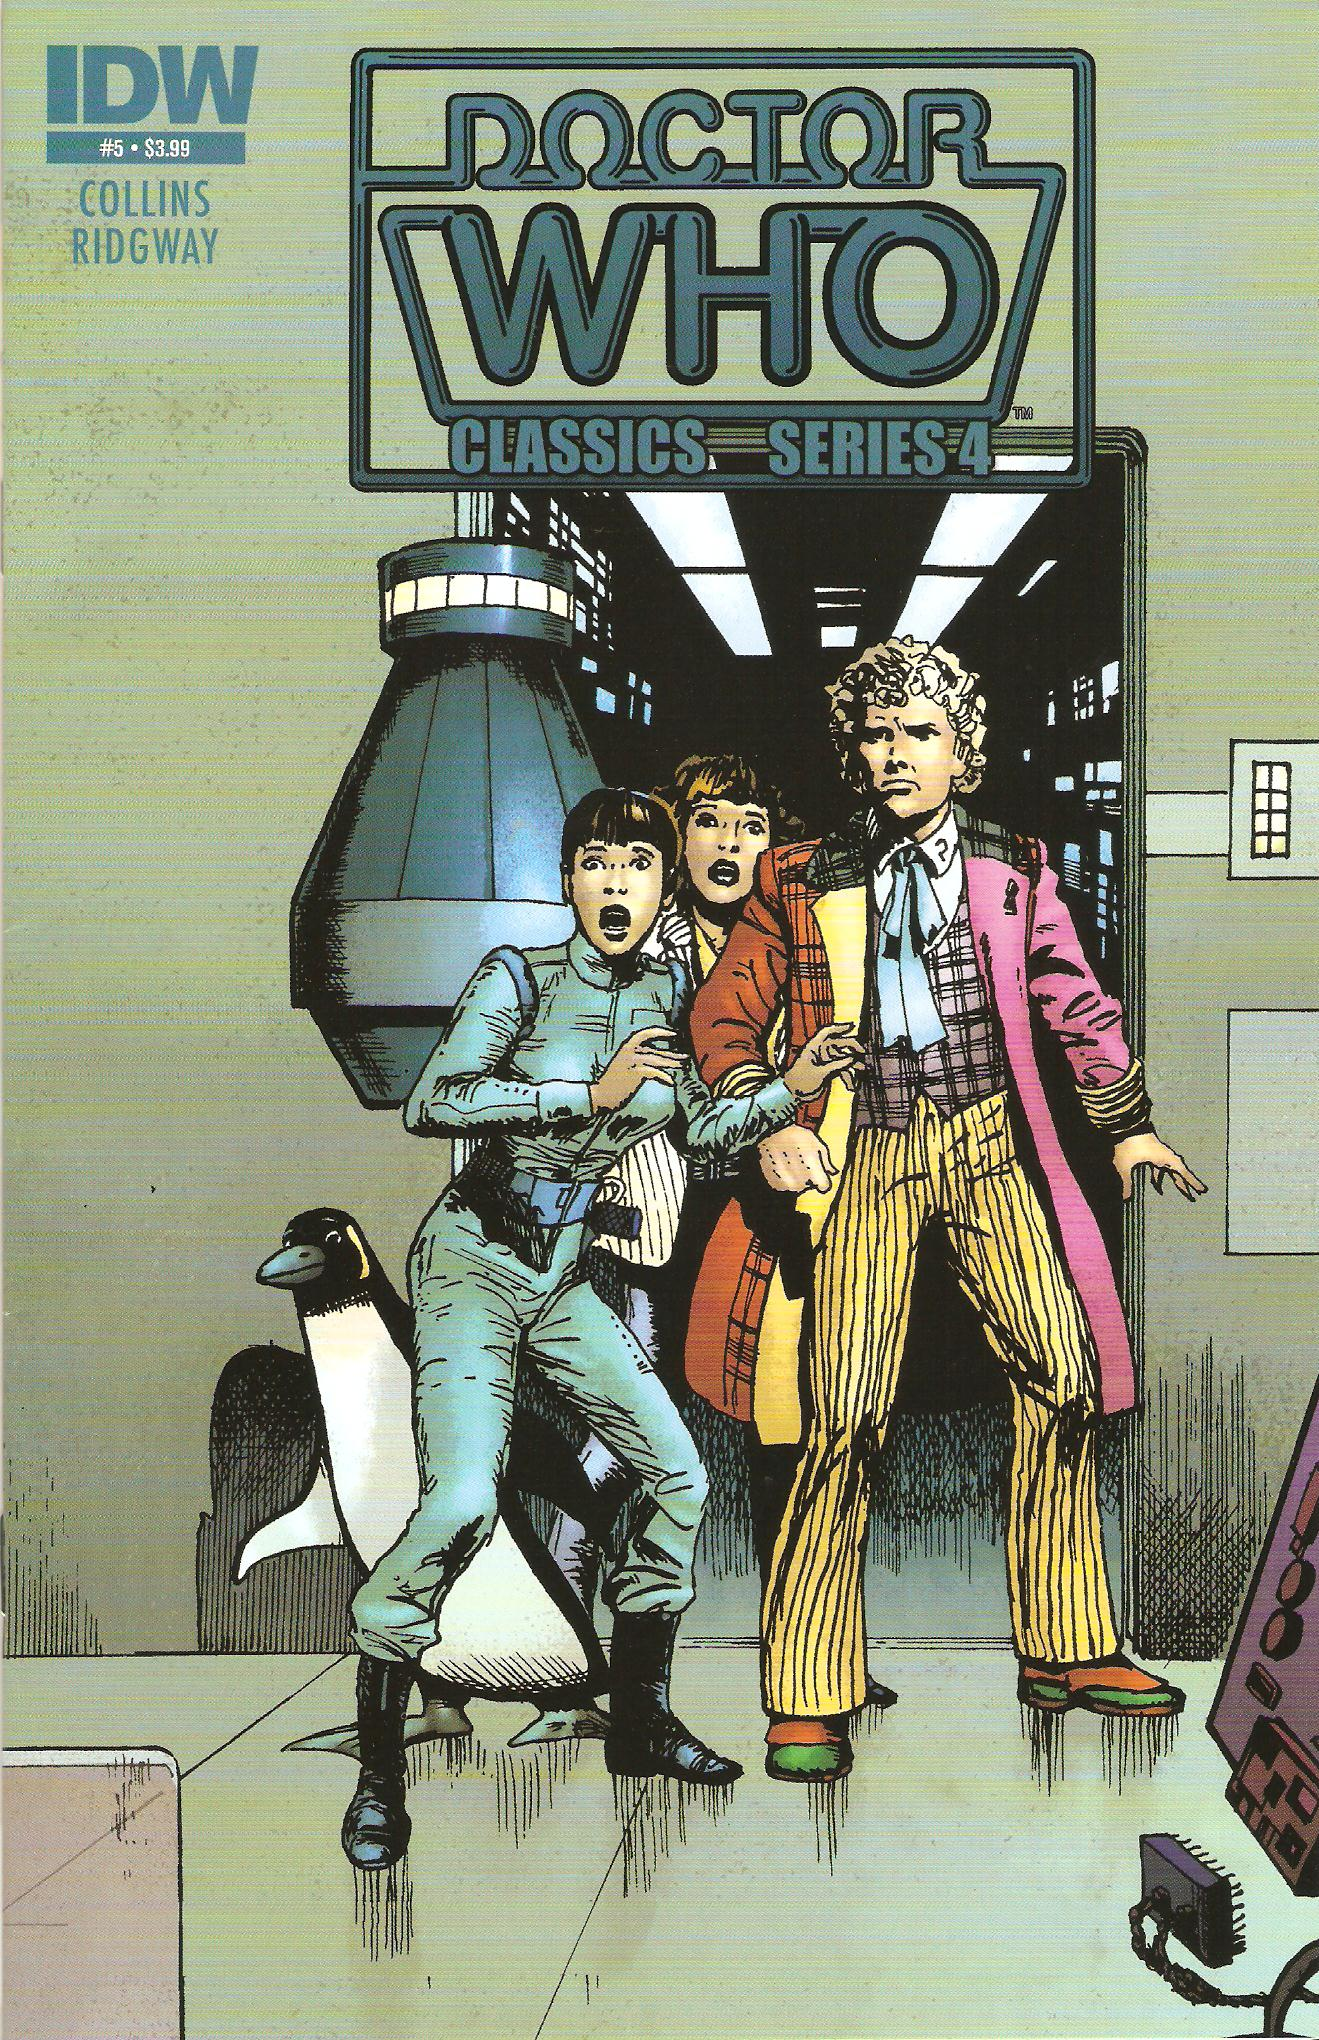 Classics series 4 issue 5